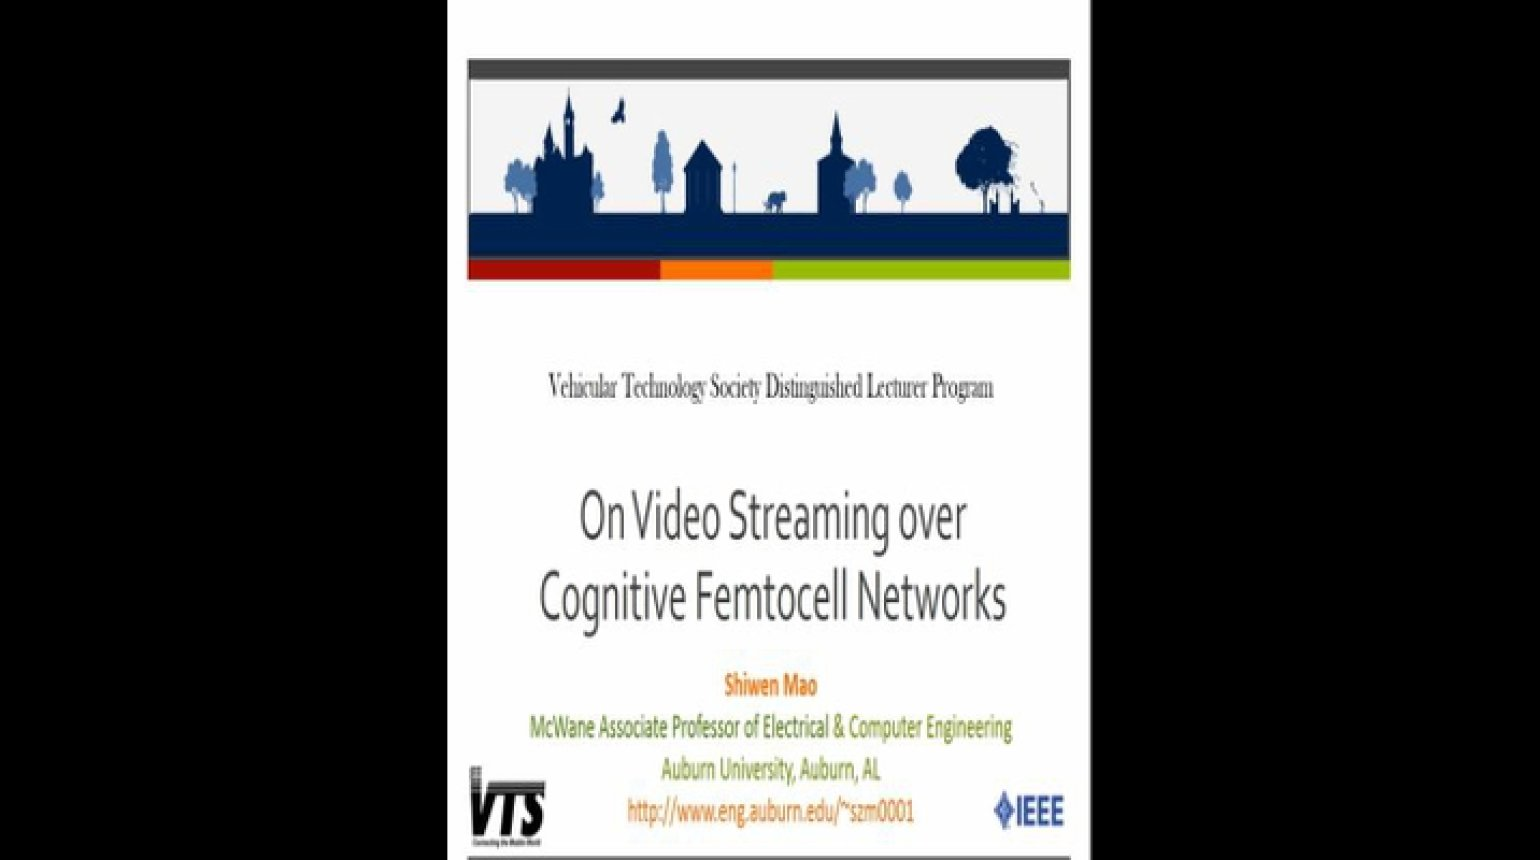 Video - On Video Streaming over Cognitive Femtocell Networks